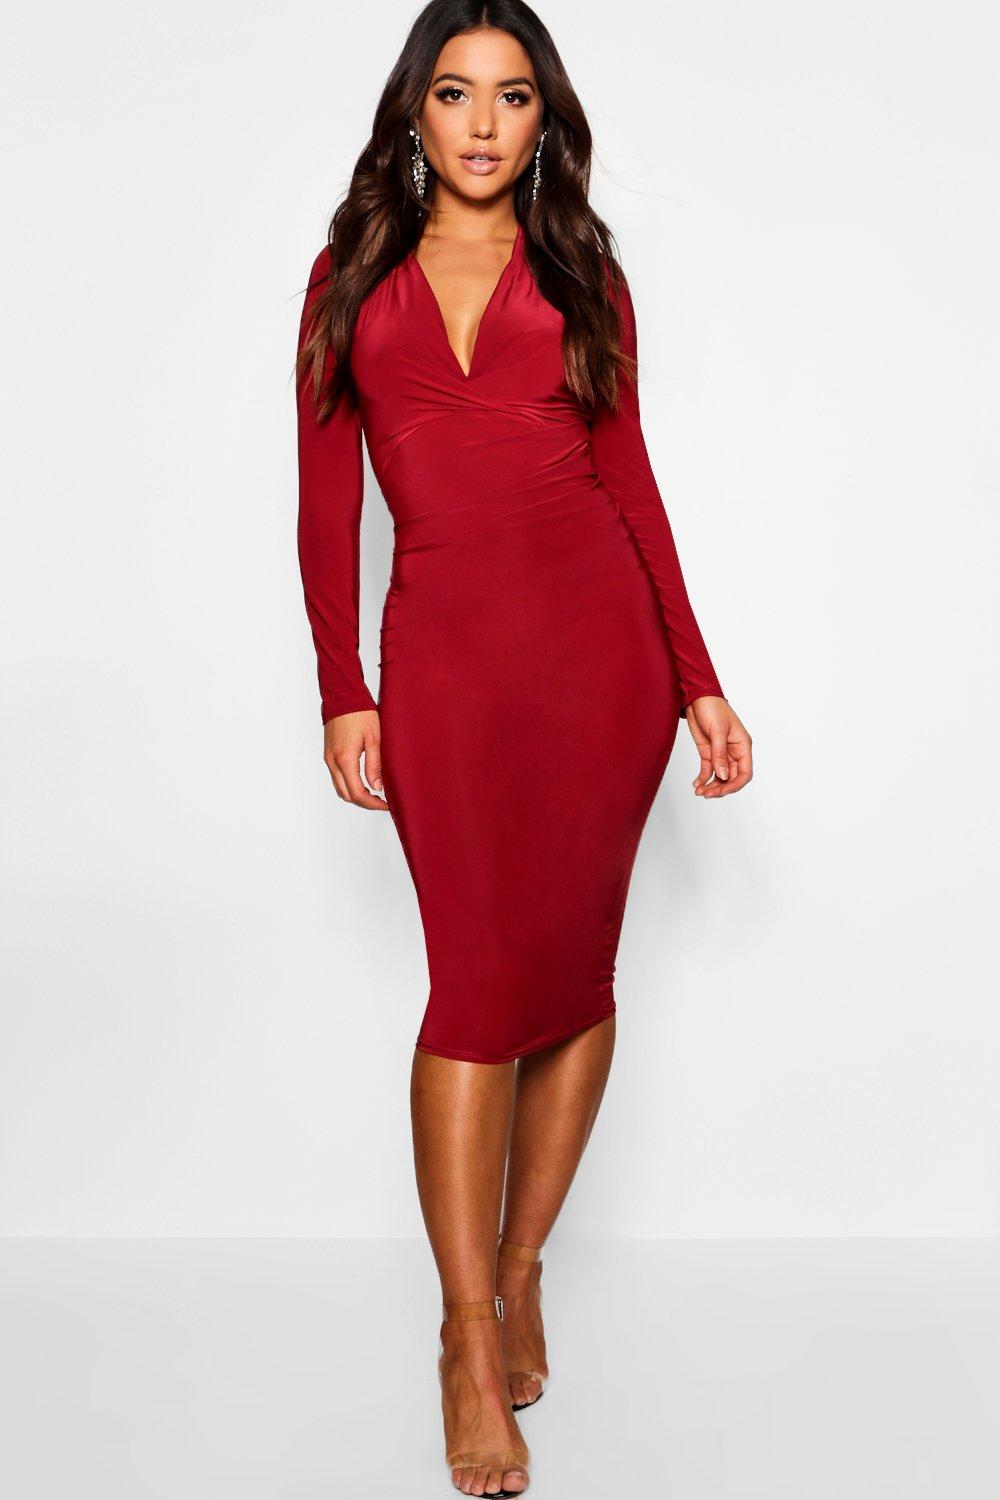 59628a6717b4 Womens Berry Slinky Plunge Neck Long Sleeve Midi Dress. Hover to zoom